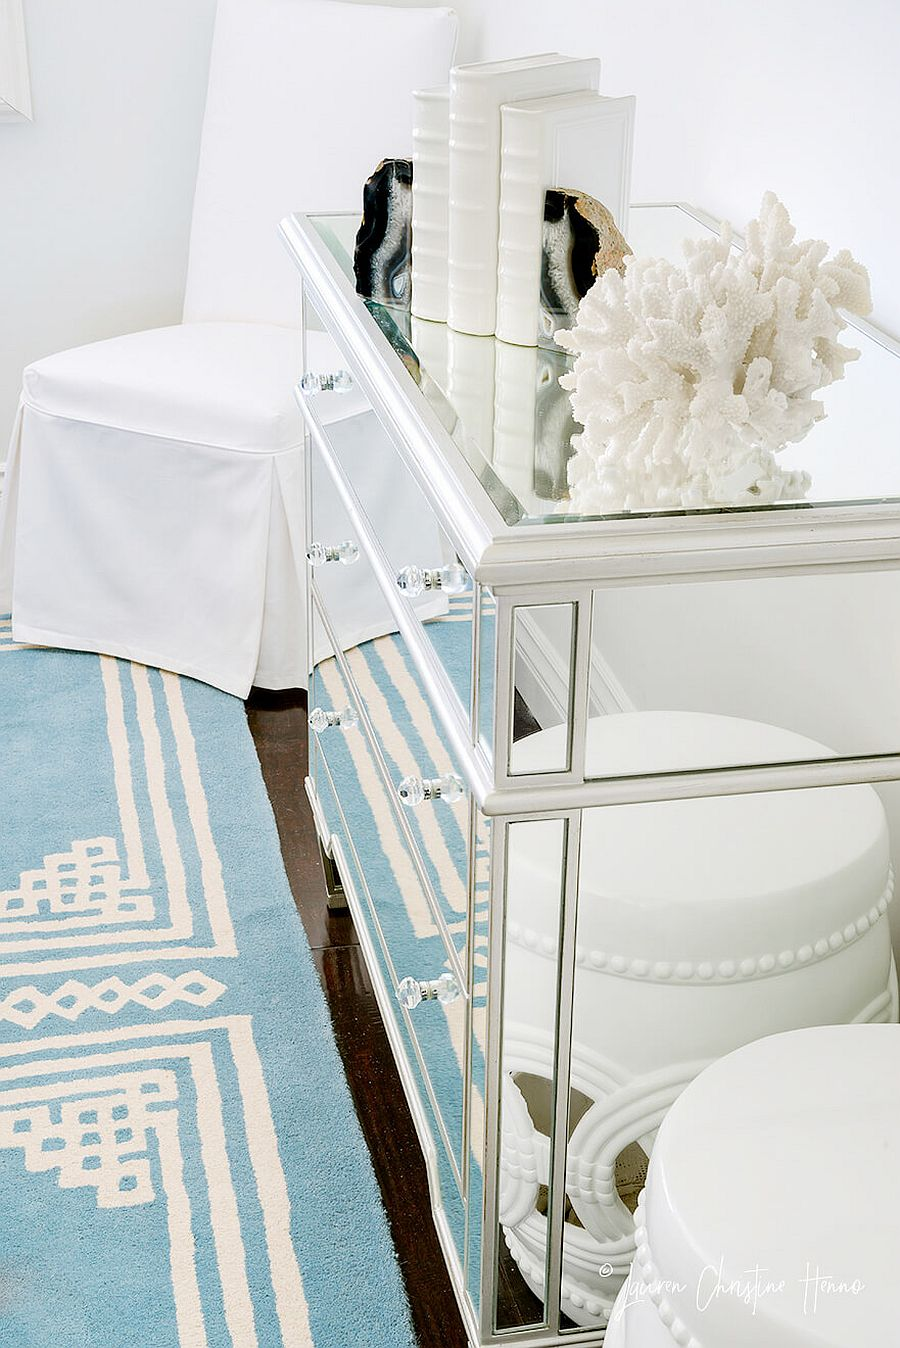 Blue, acryclic and white combine to create the perfect, relaxing cabana